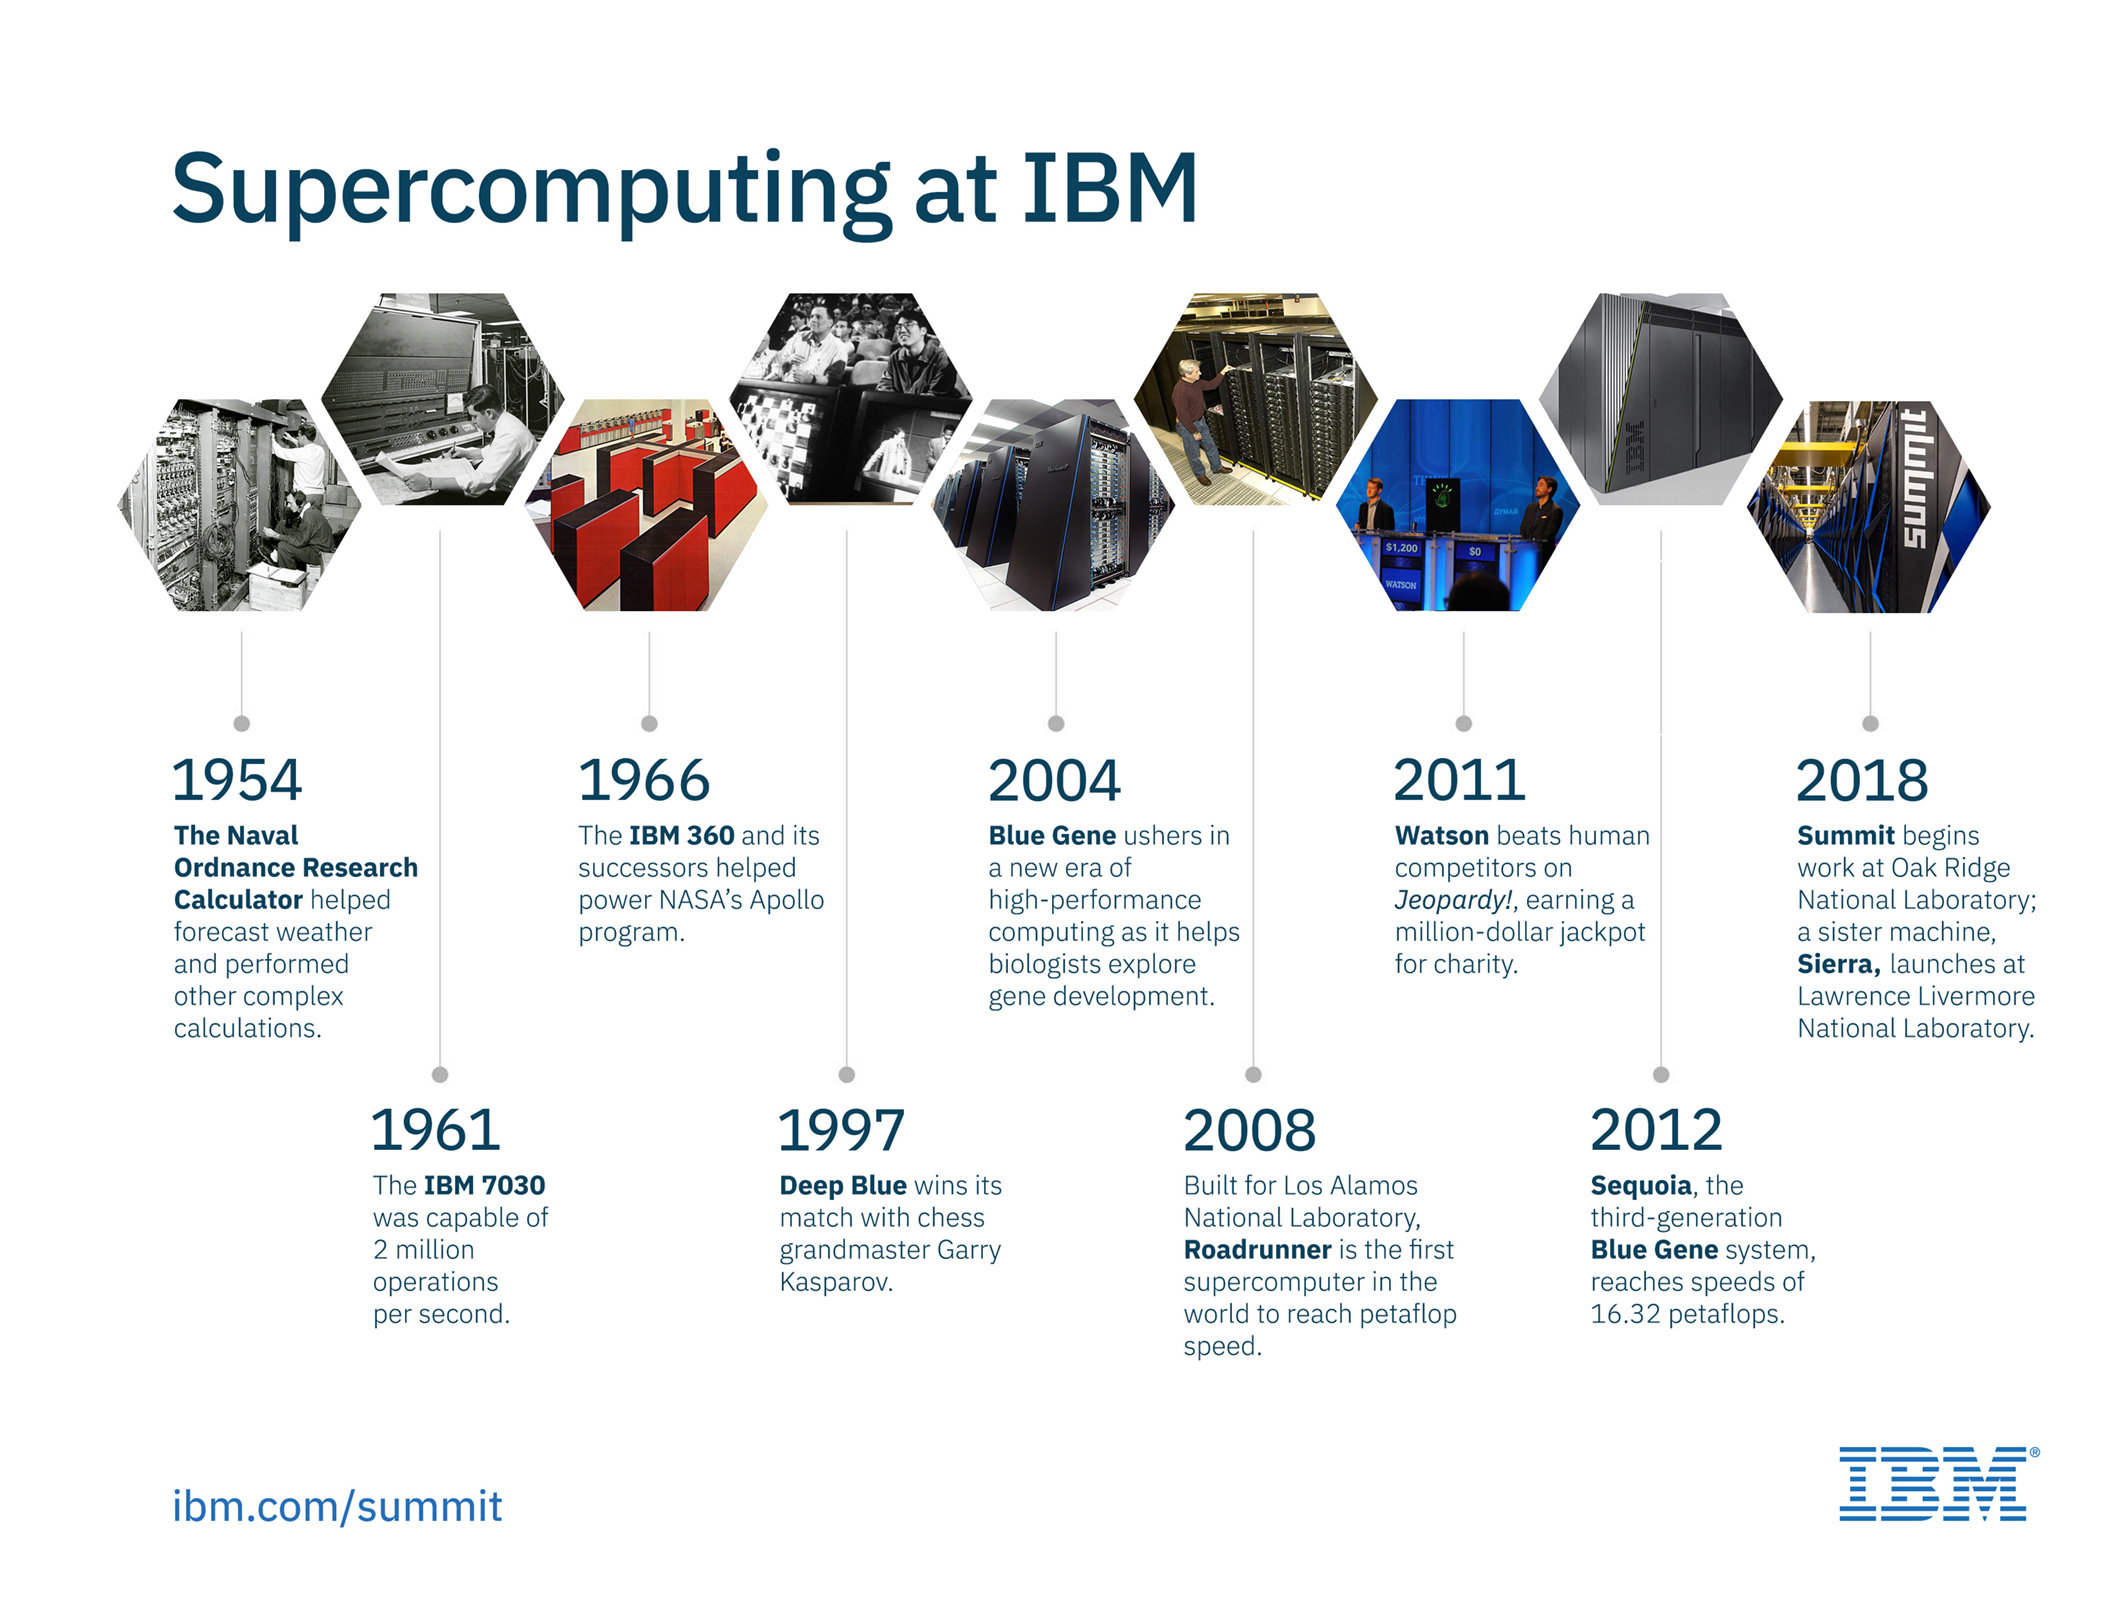 IBM – See the story behind Summit, the world's most powerful